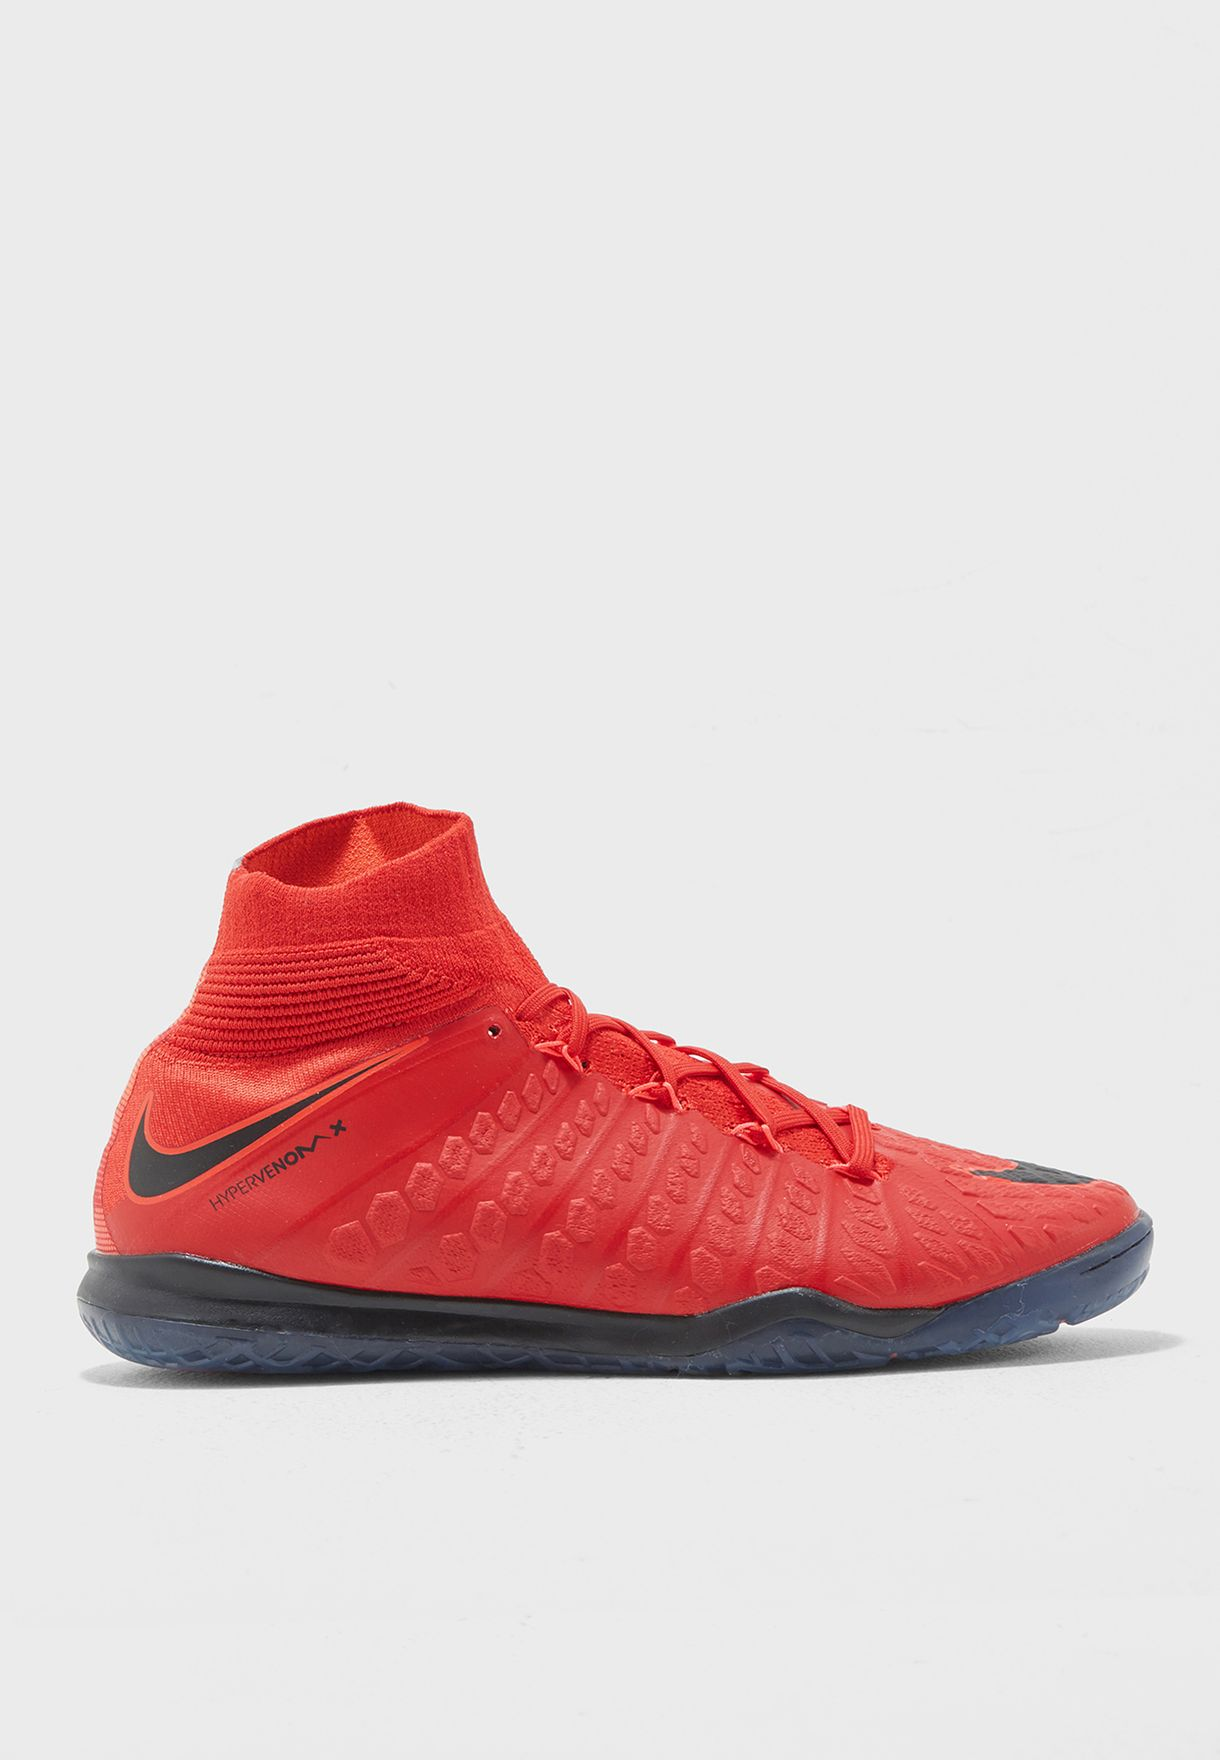 87919a3bd61 Shop Nike red Hypervenomx Proximo II DF IC 852577-616 for Men in UAE ...